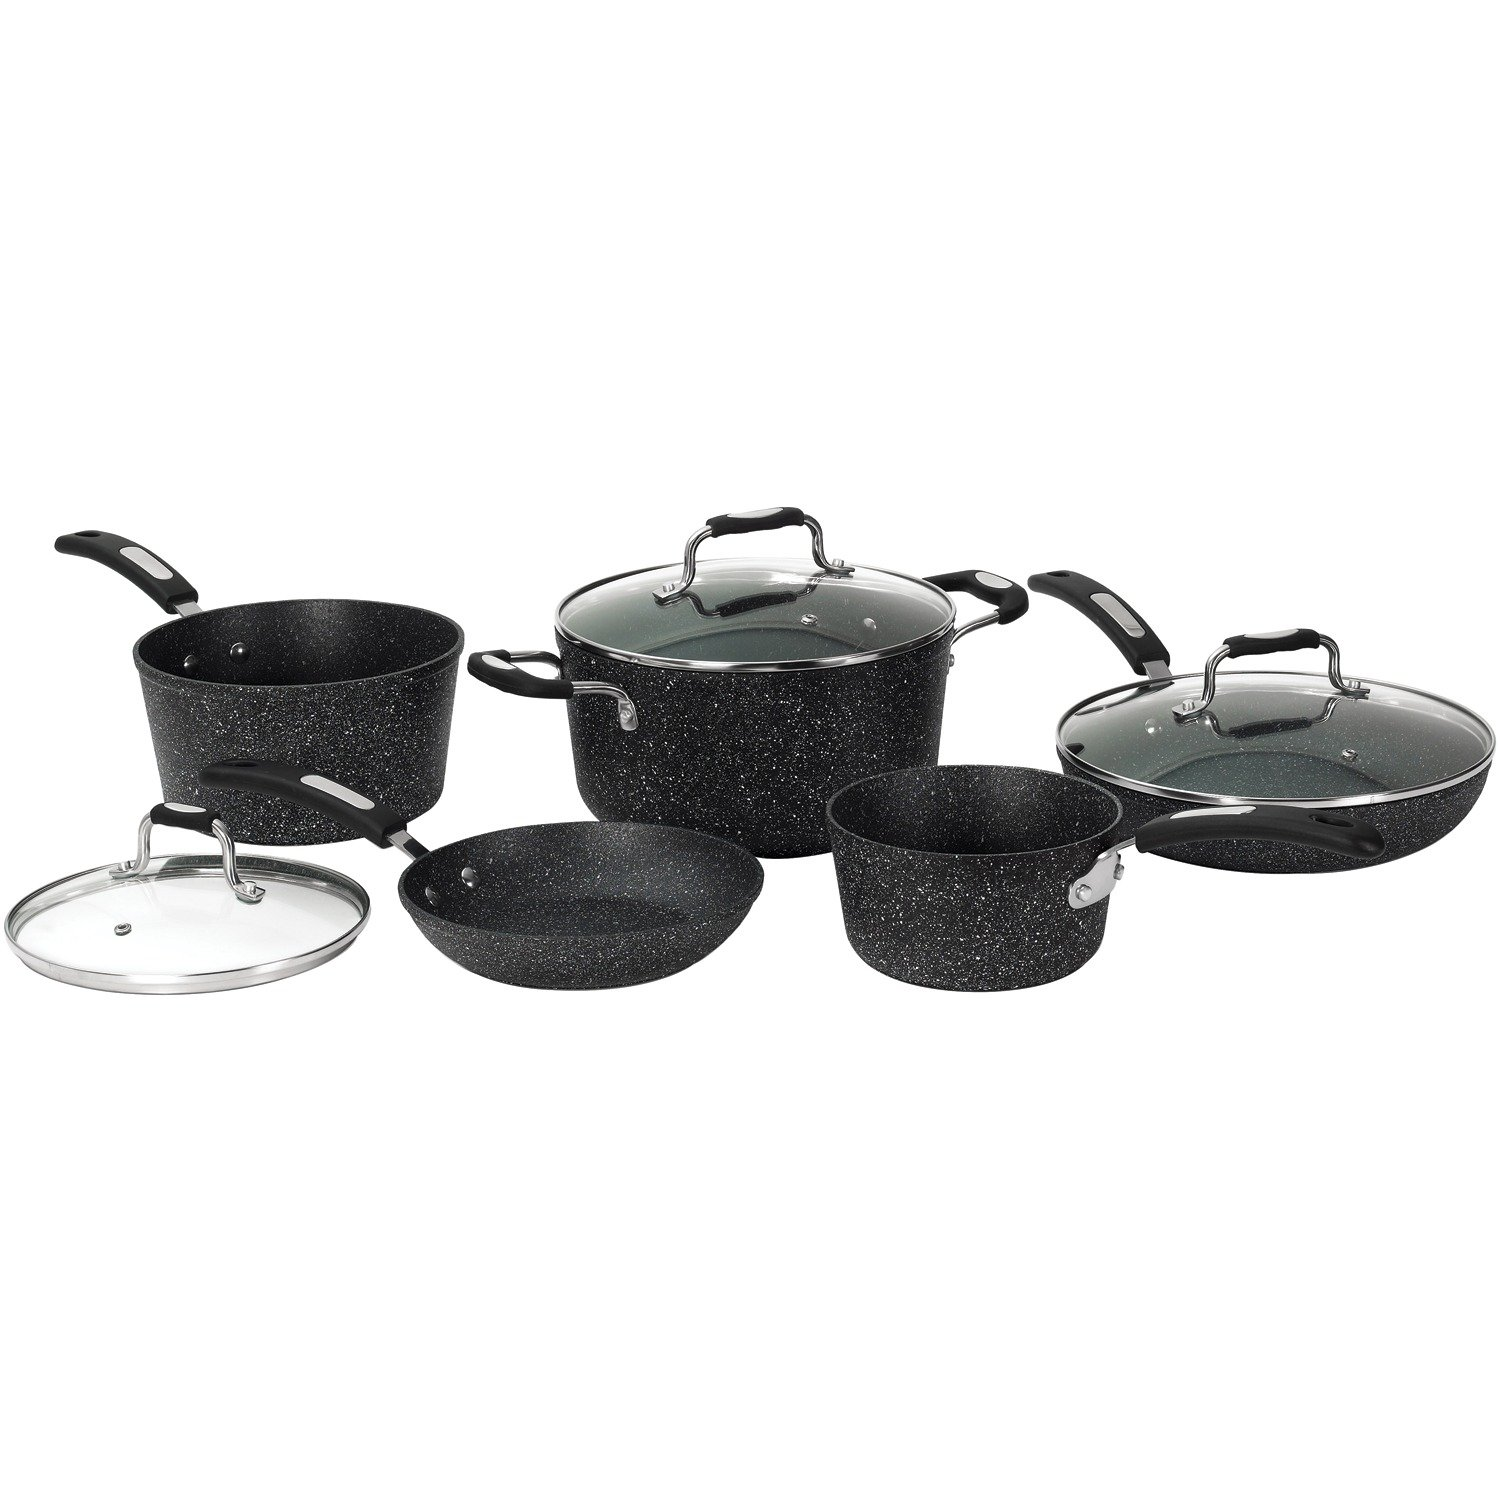 Starfrit The Rock 030930 8 Piece Forged Aluminum Cookware Set with Bakelite Handle 030930-001-0000